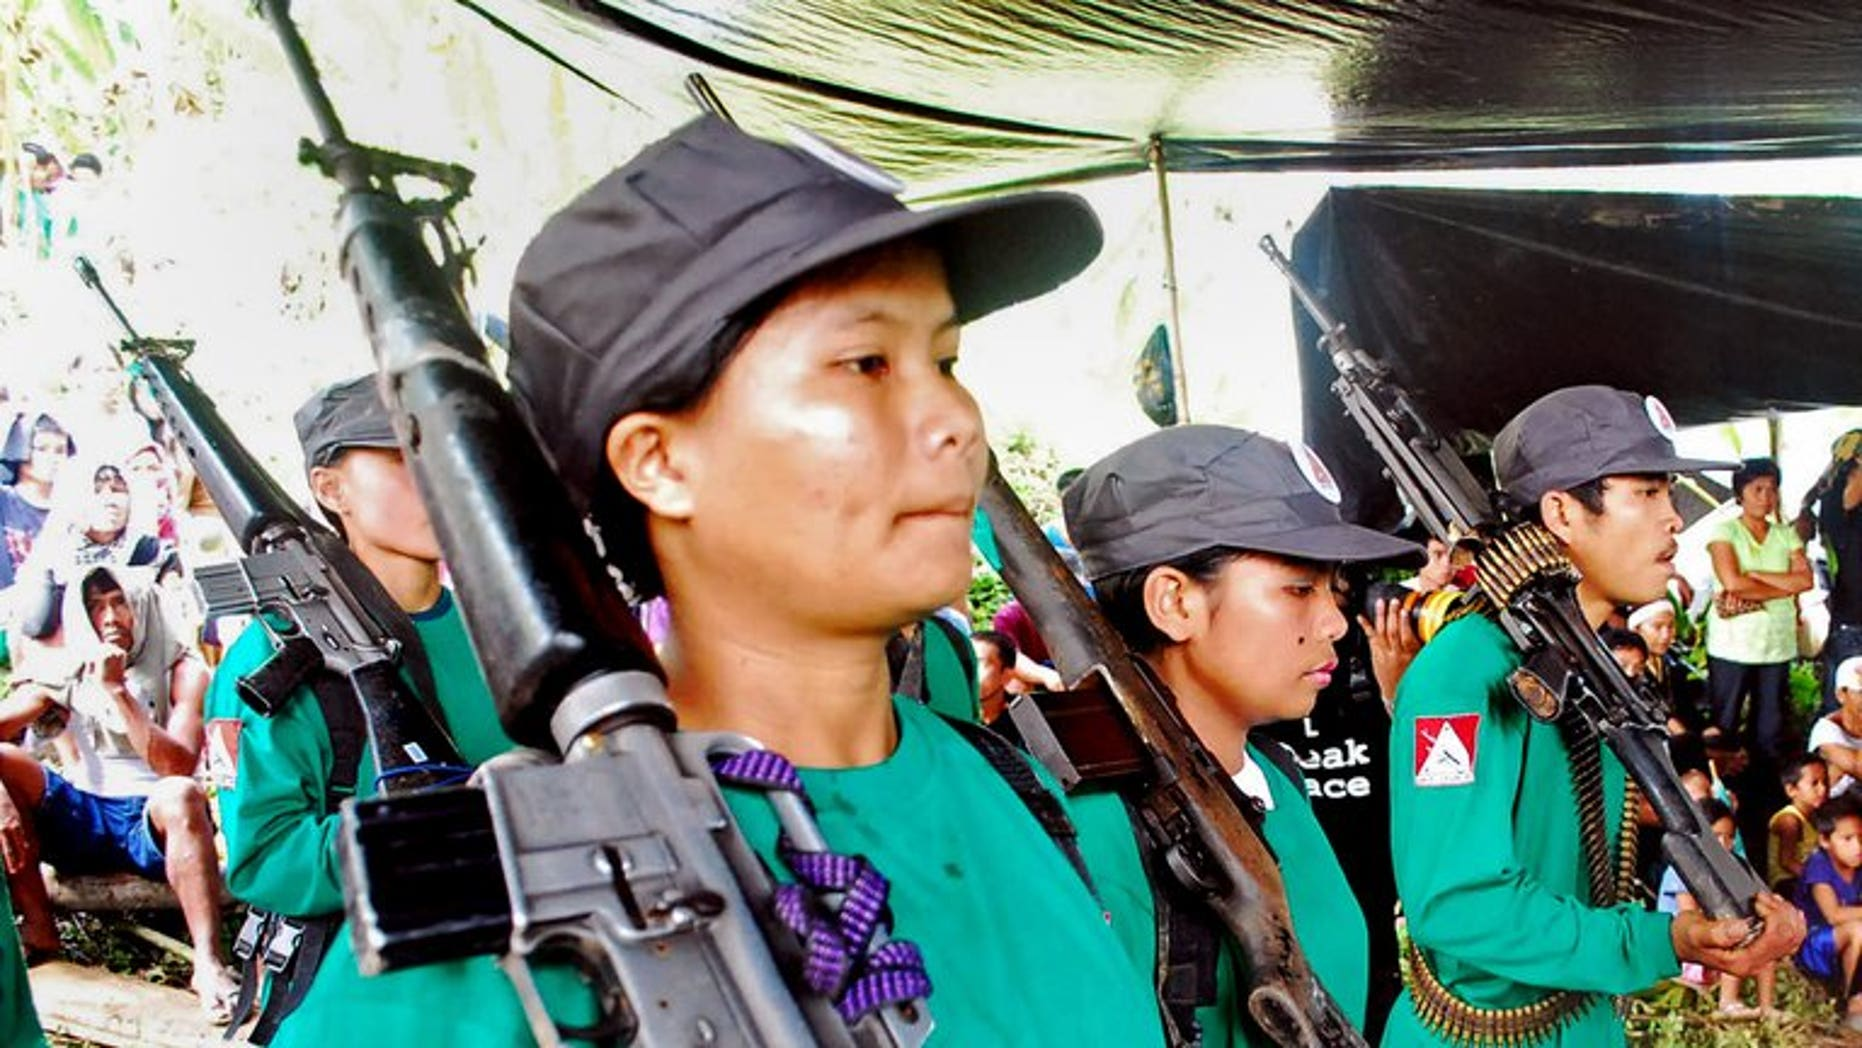 New People's Army rebels drill at an unspecified location in Surigao del Sur province, Mindanao, in December 2009. Philippine police and troops Sunday captured a woman who is one of the country's most wanted communist guerrillas, officials said.